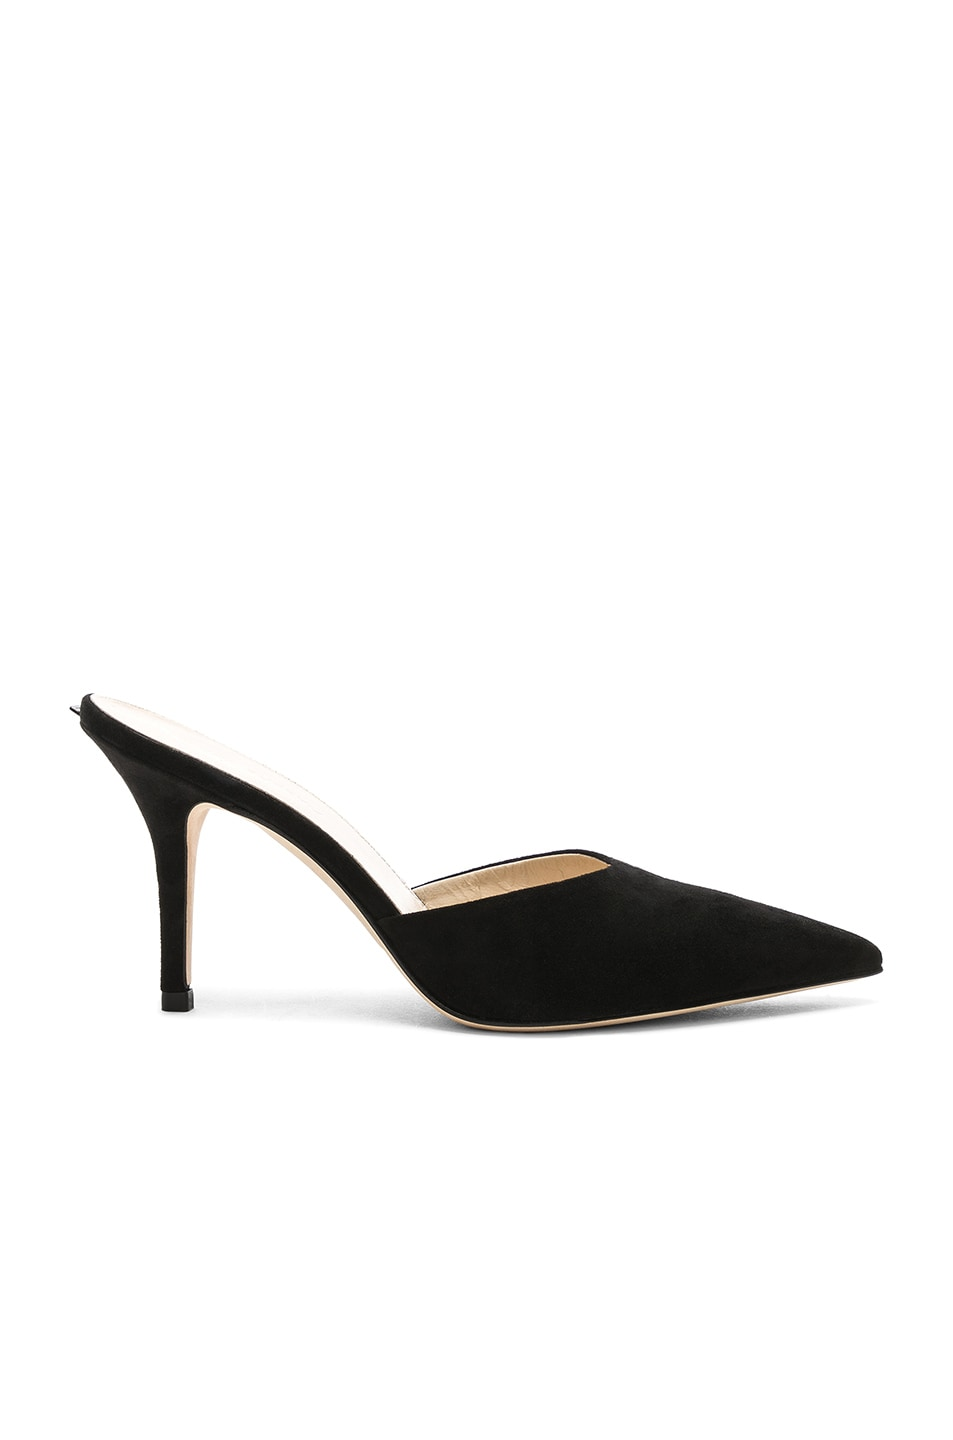 Image 6 of Magda Butrym Suede France Mules in Black